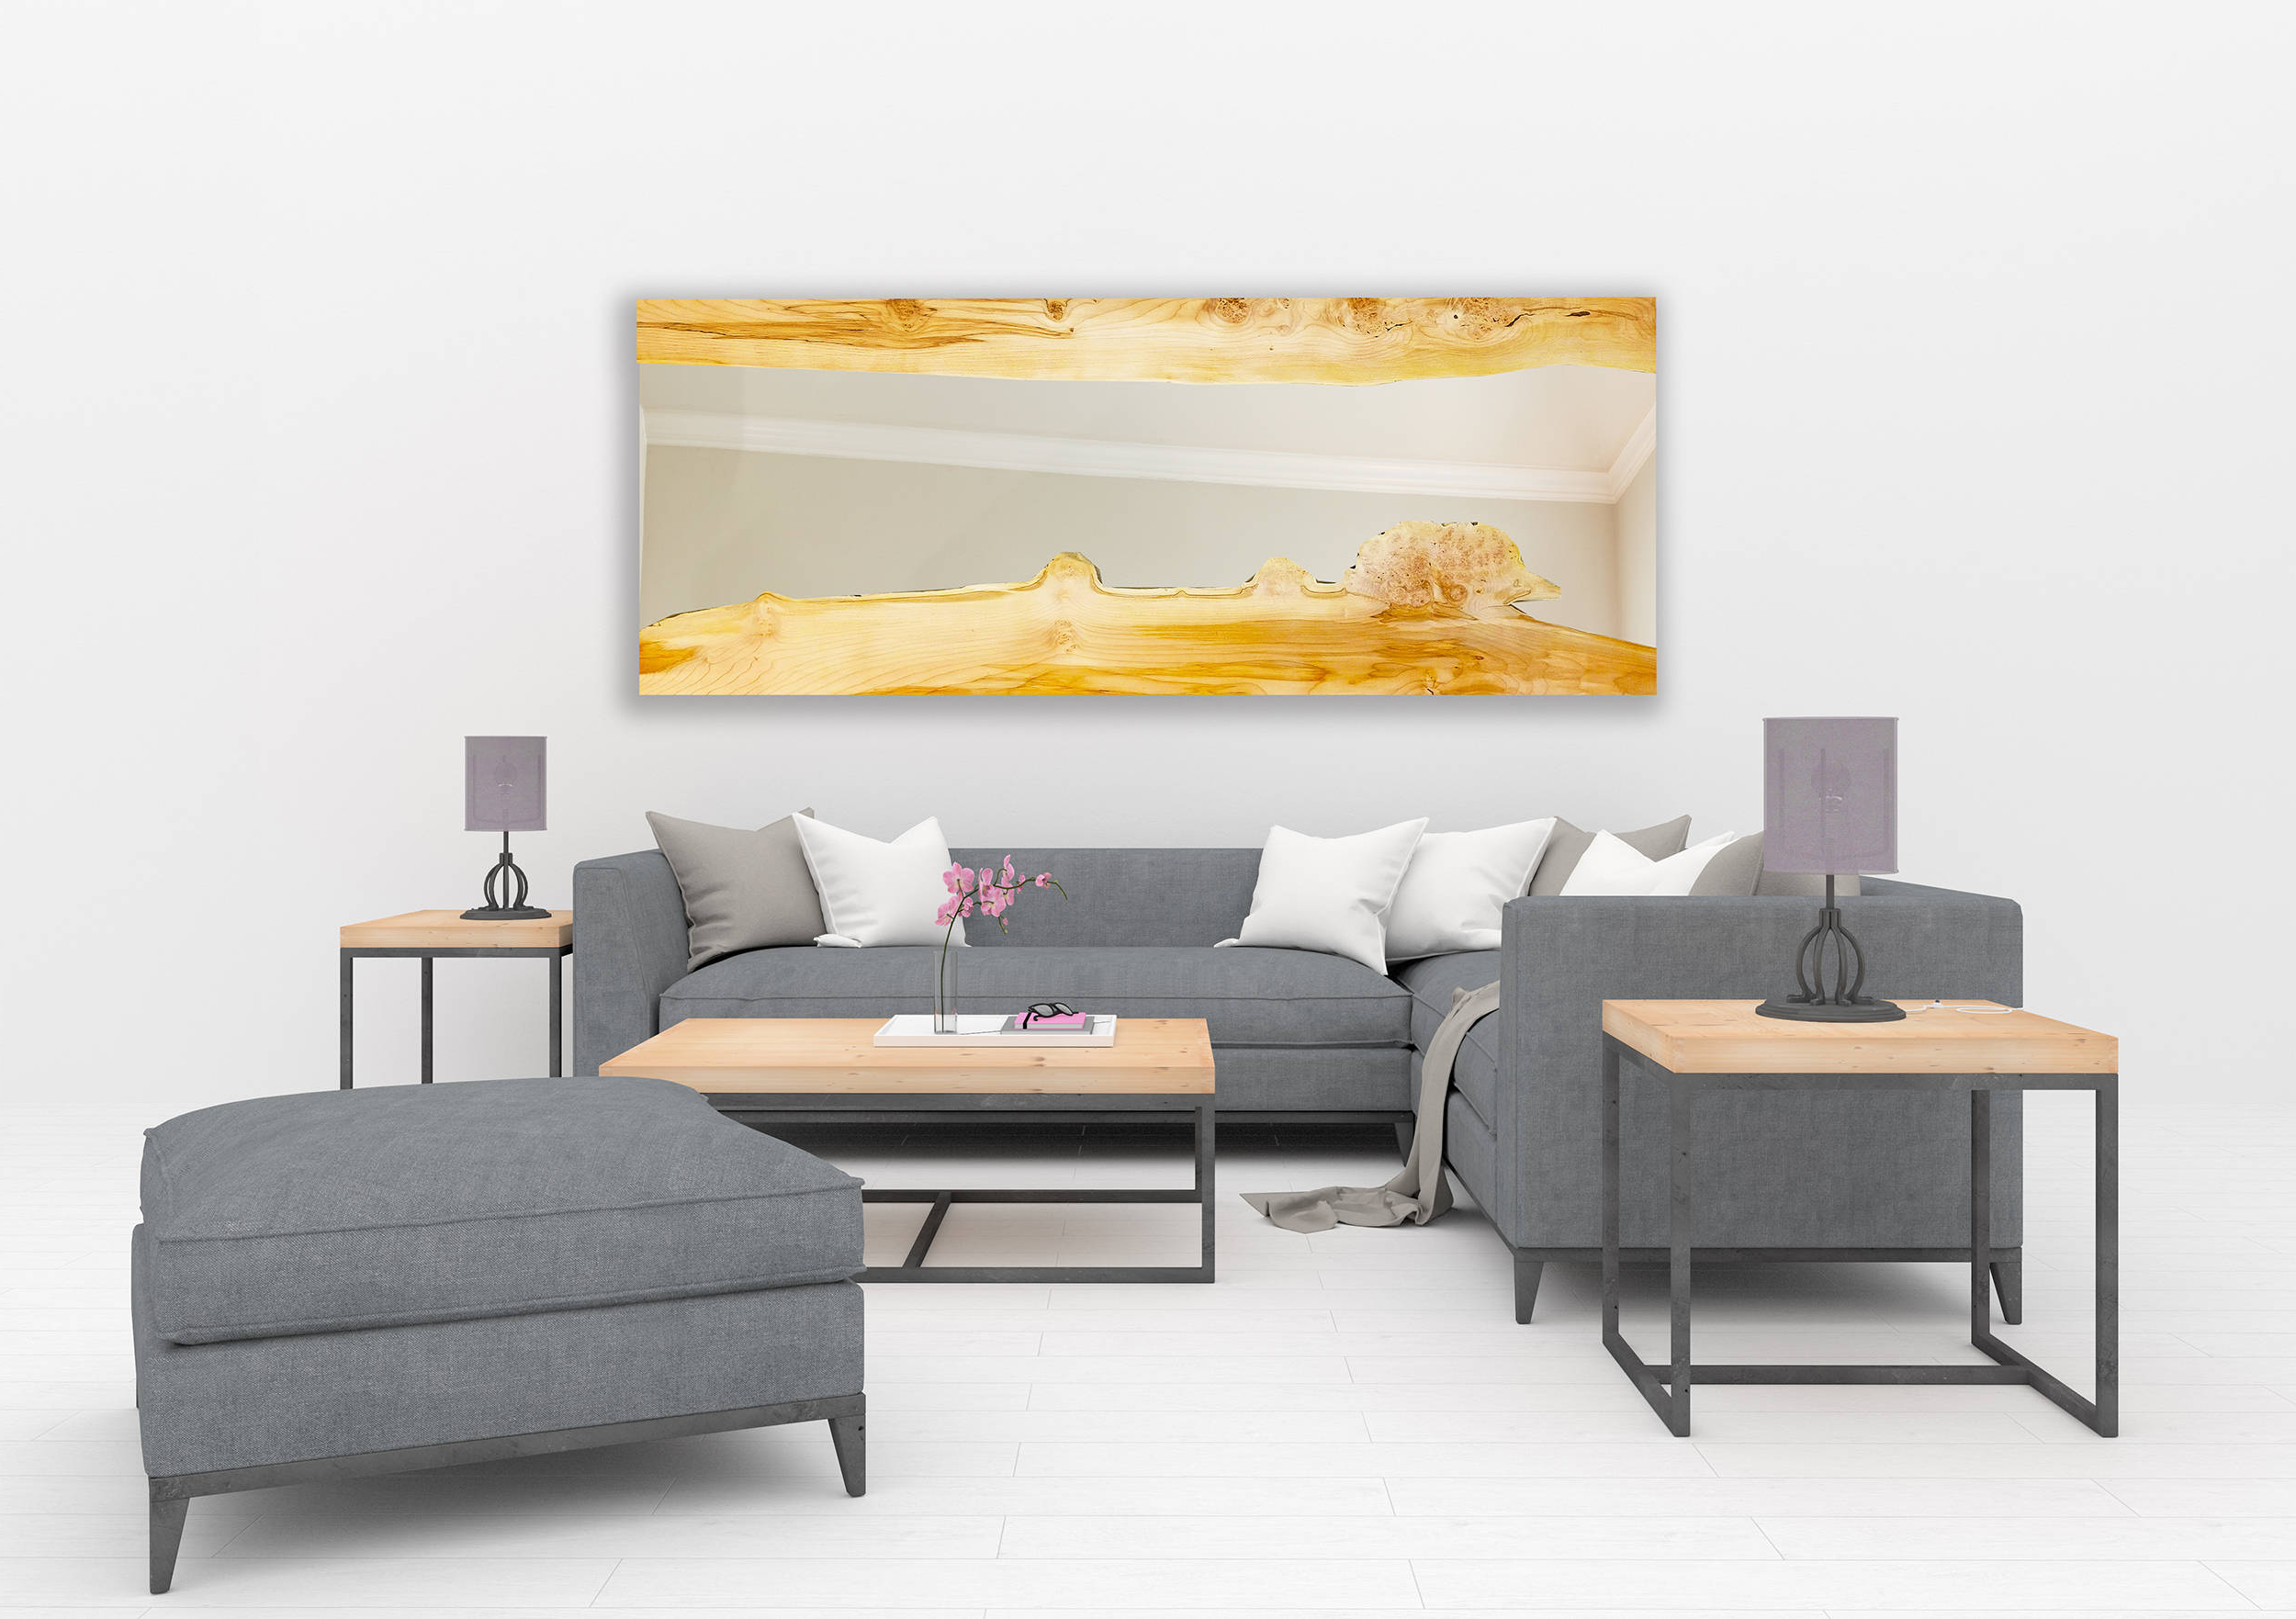 Custom – Large Maple Wall Mirror – Living Room – Modern – Live Edge – Minimalistic Pertaining To Most Up To Date Living Room Wall Mirrors (View 20 of 20)